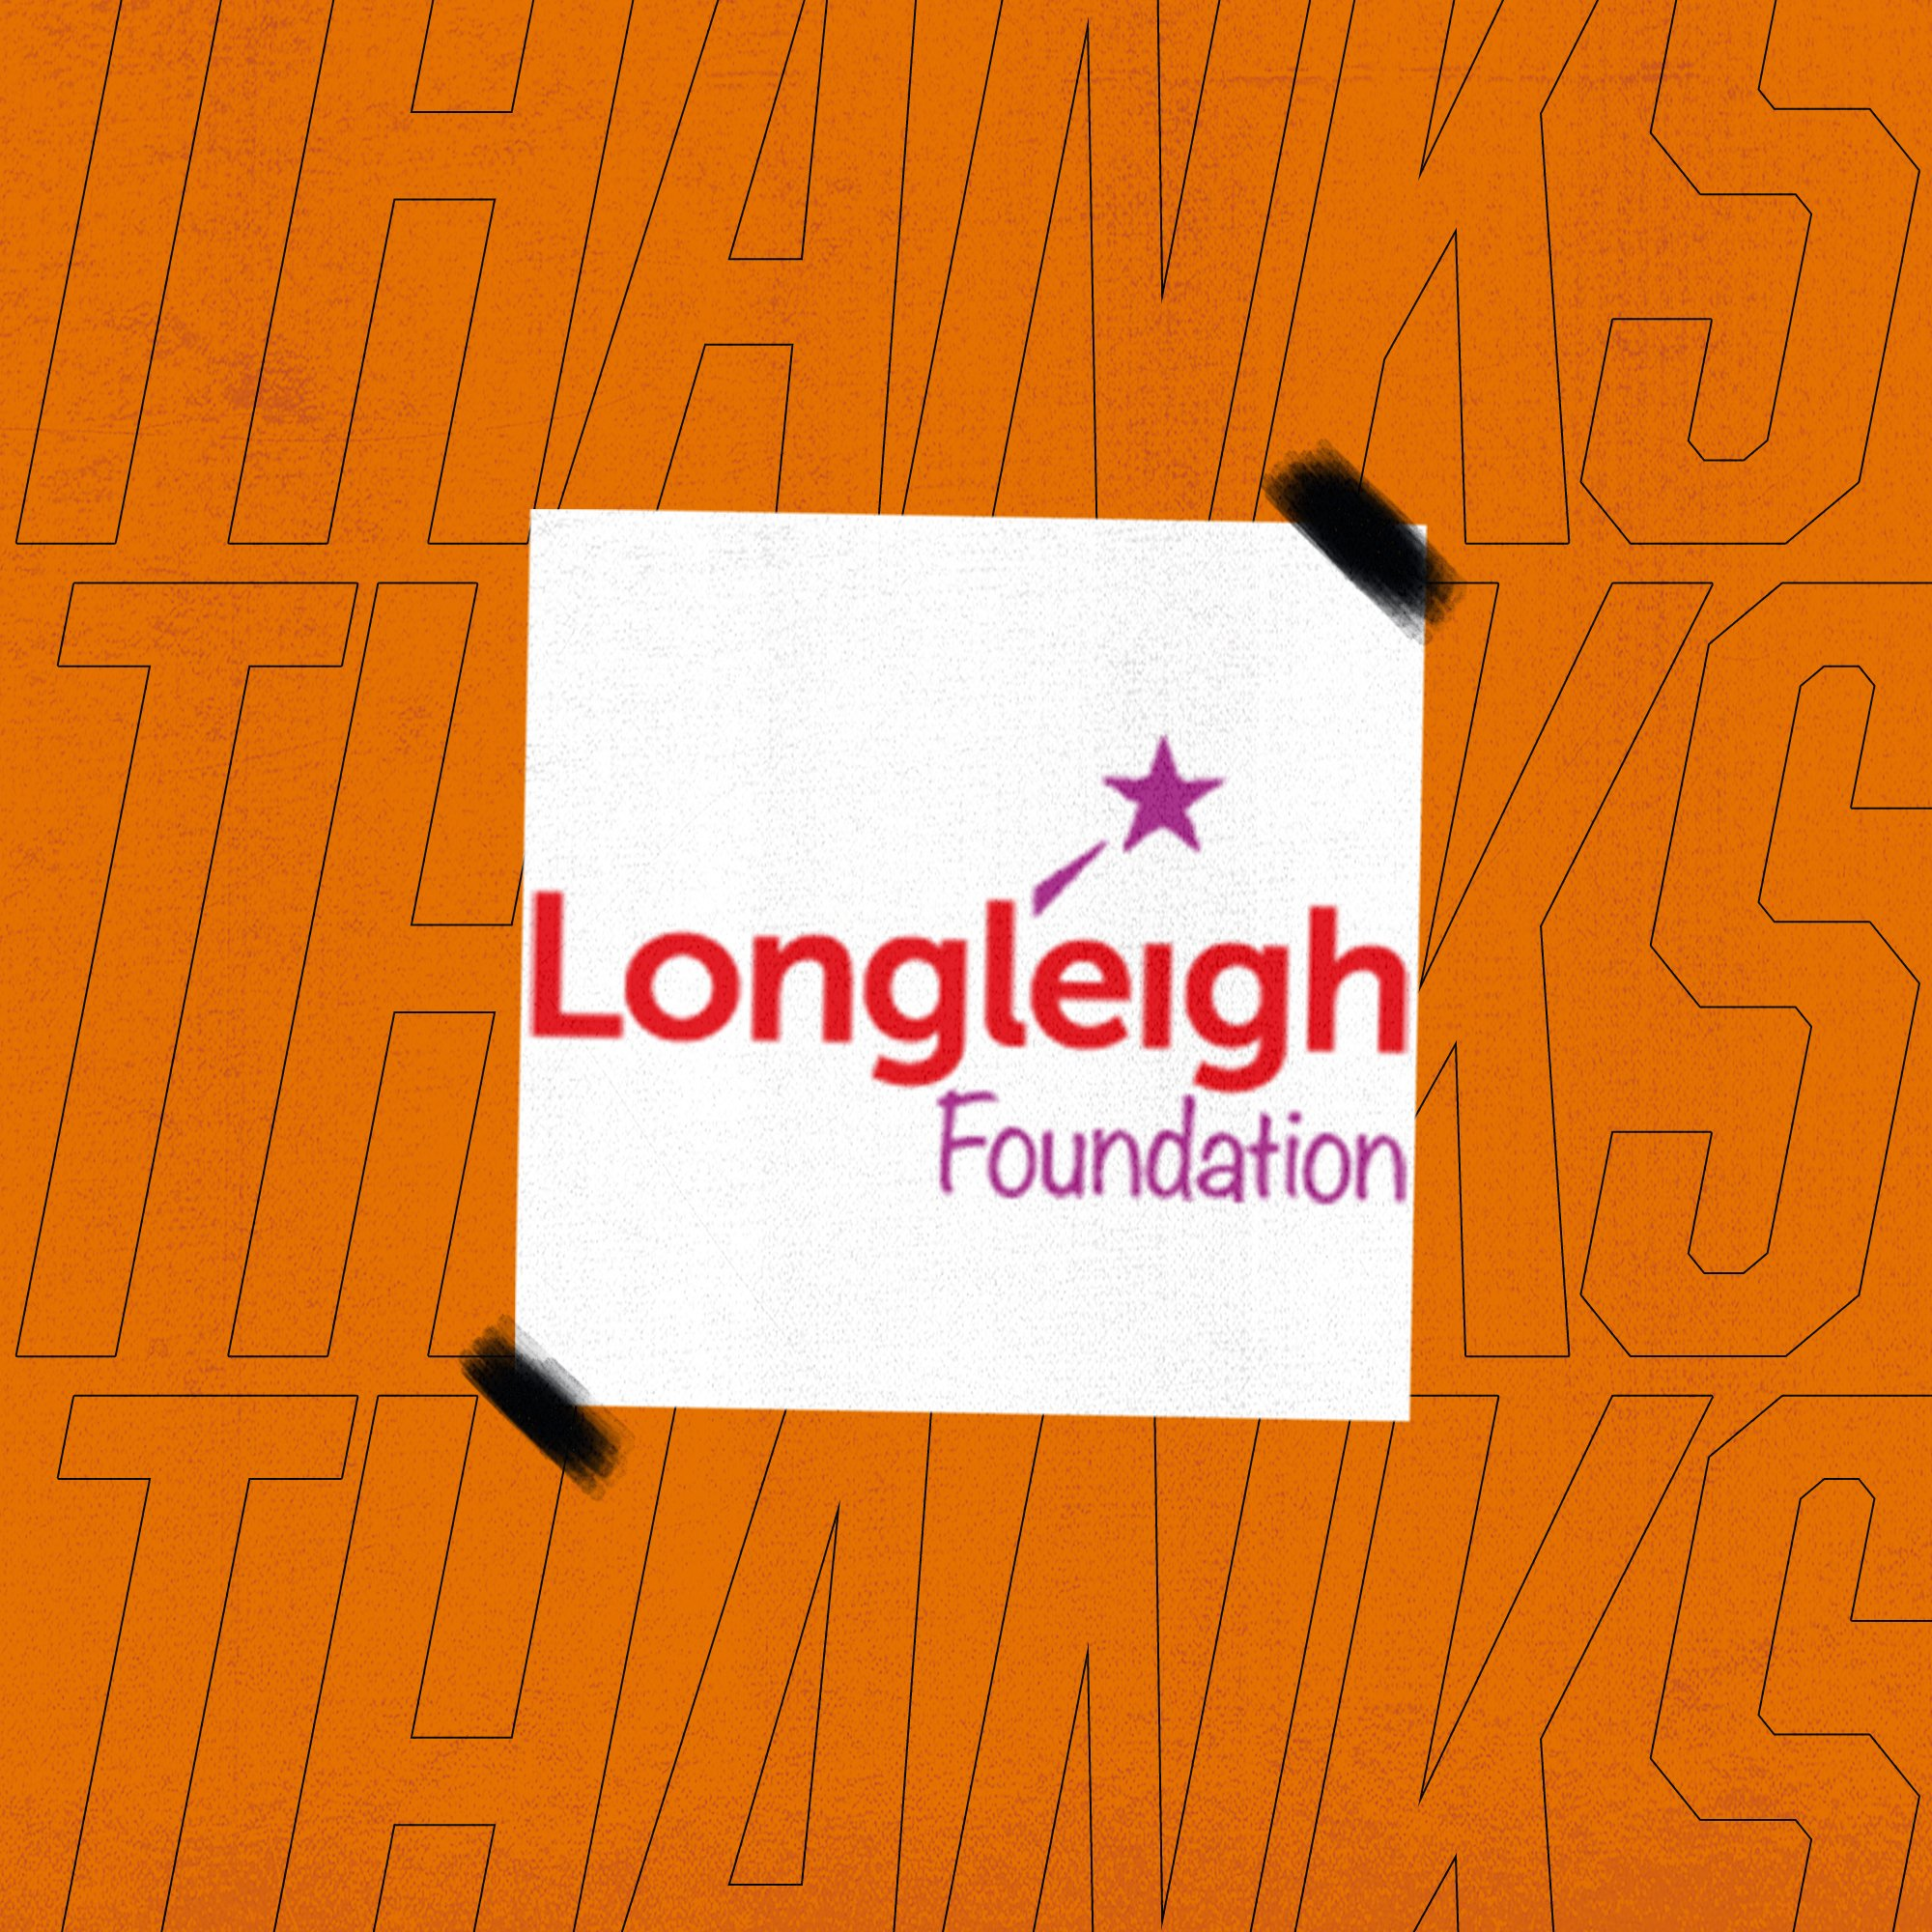 Thank You Longleigh Foundation!